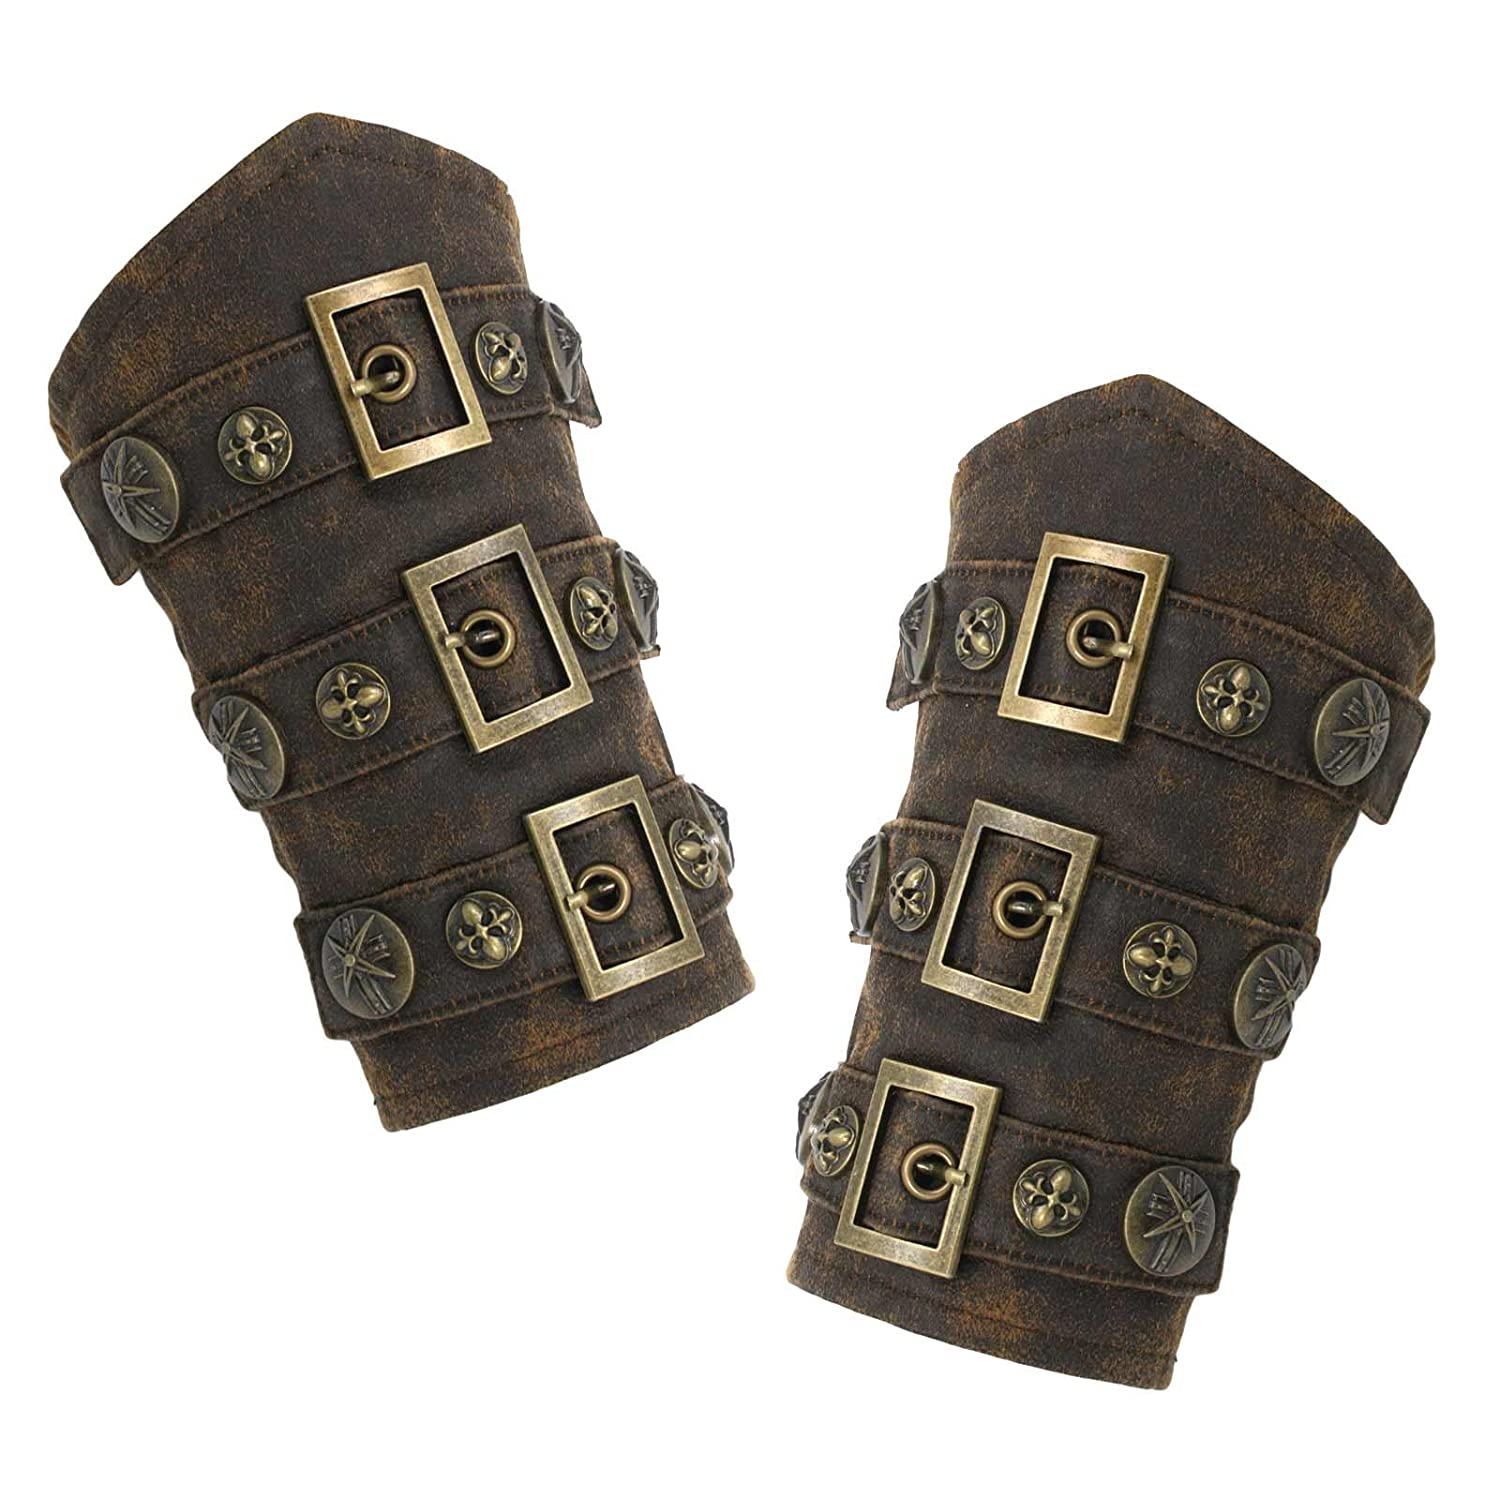 Steampunk Men's Shirts Faux Leather Steampunk Armor Cuffs $36.95 AT vintagedancer.com